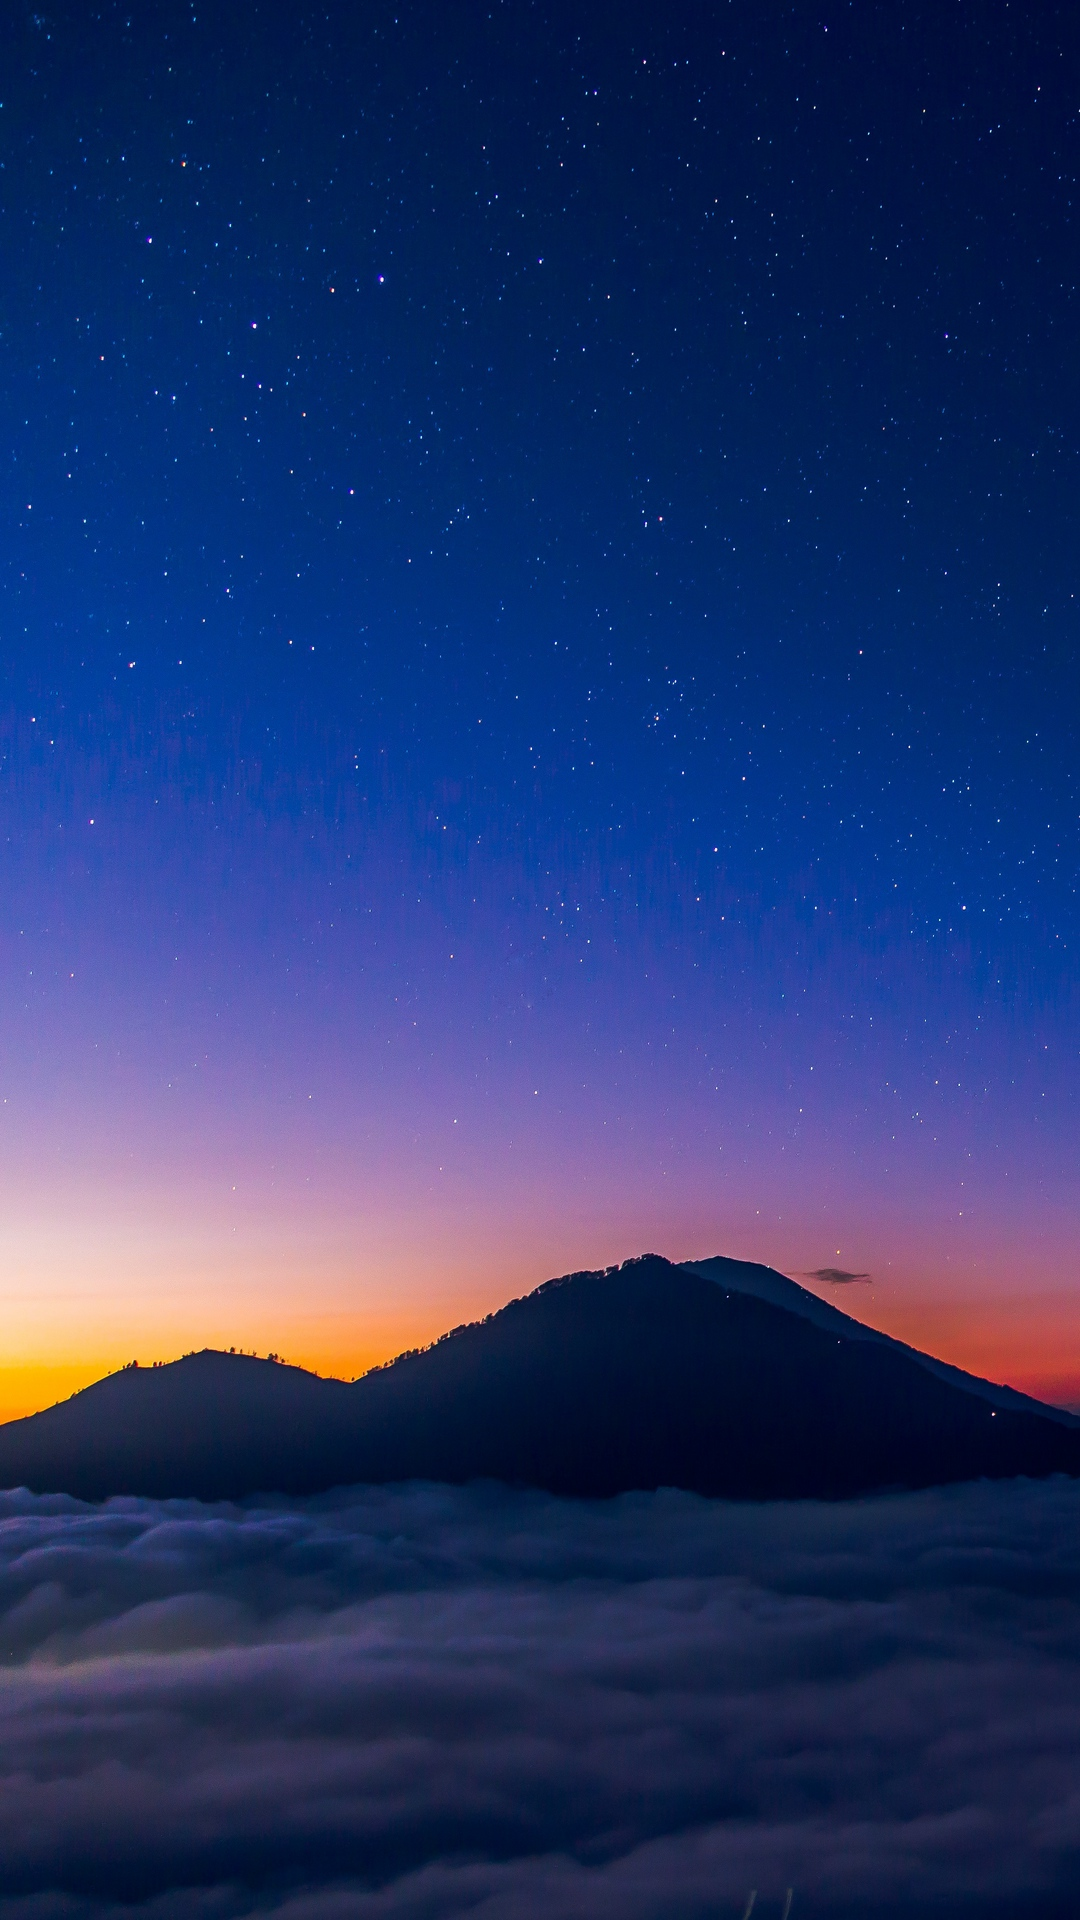 Starry Sky Mountains Clouds Night Wallpaper 1080x1920